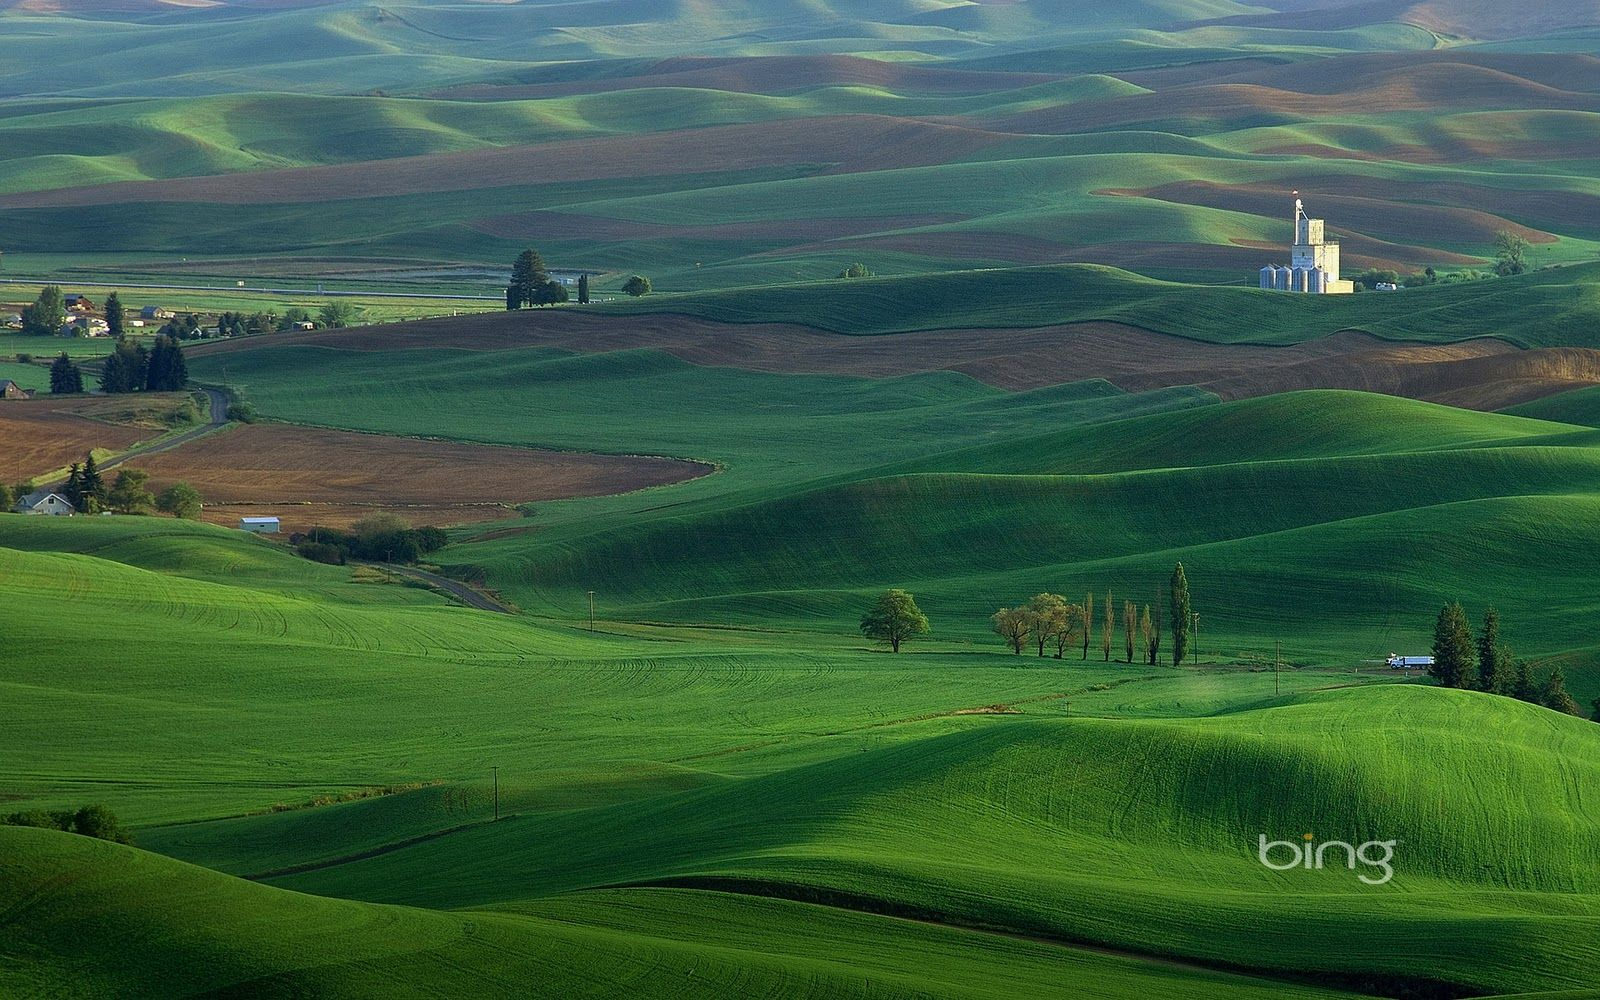 Bing Wallpaper Collection Green Plains Wallpaper The Wallpaper Database Palouse Golf Course Photography Landscape